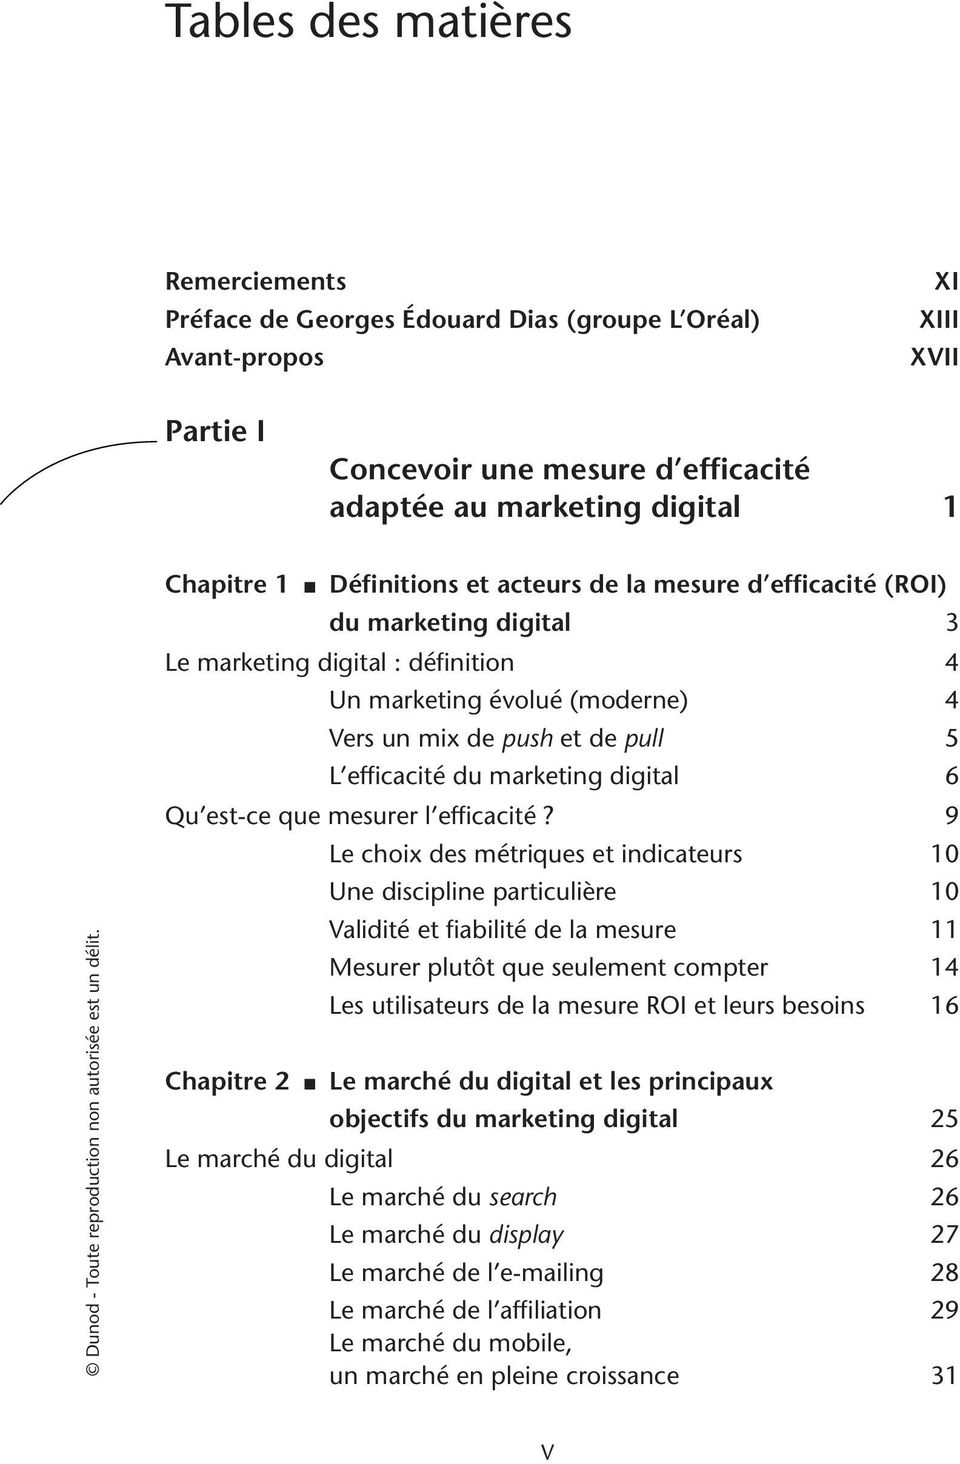 Chapitre 1 Définitions et acteurs de la mesure d efficacité (ROI) du marketing digital 3 Le marketing digital : définition 4 Un marketing évolué (moderne) 4 Vers un mix de push et de pull 5 L